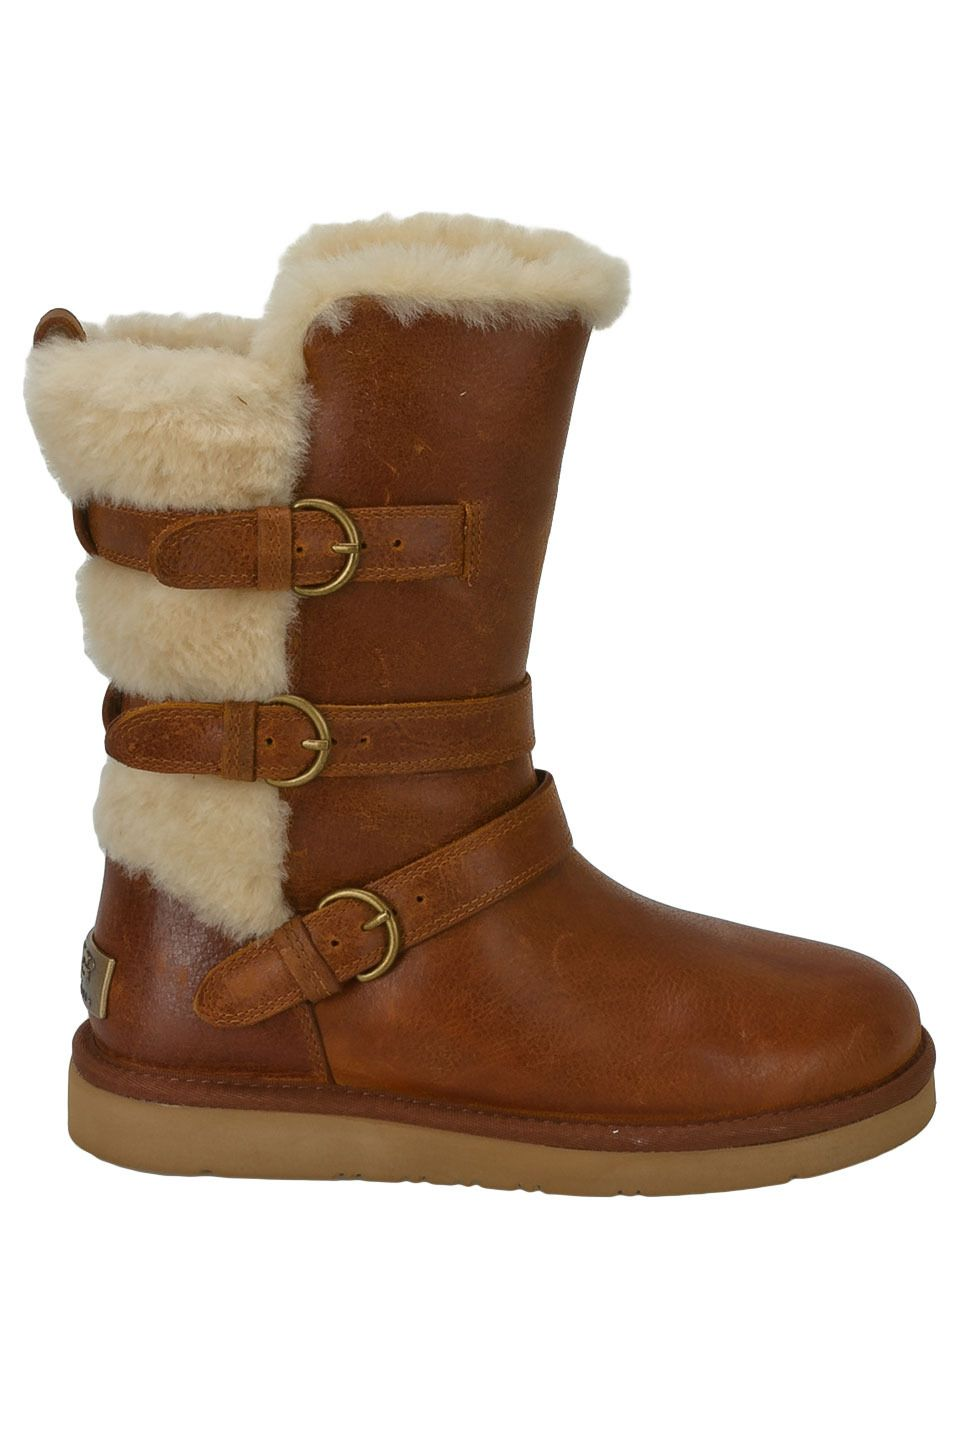 8a517a69a19 Ugg Ladies' Becket Boots in Chestnut - Beyond the Rack   Beyond the ...